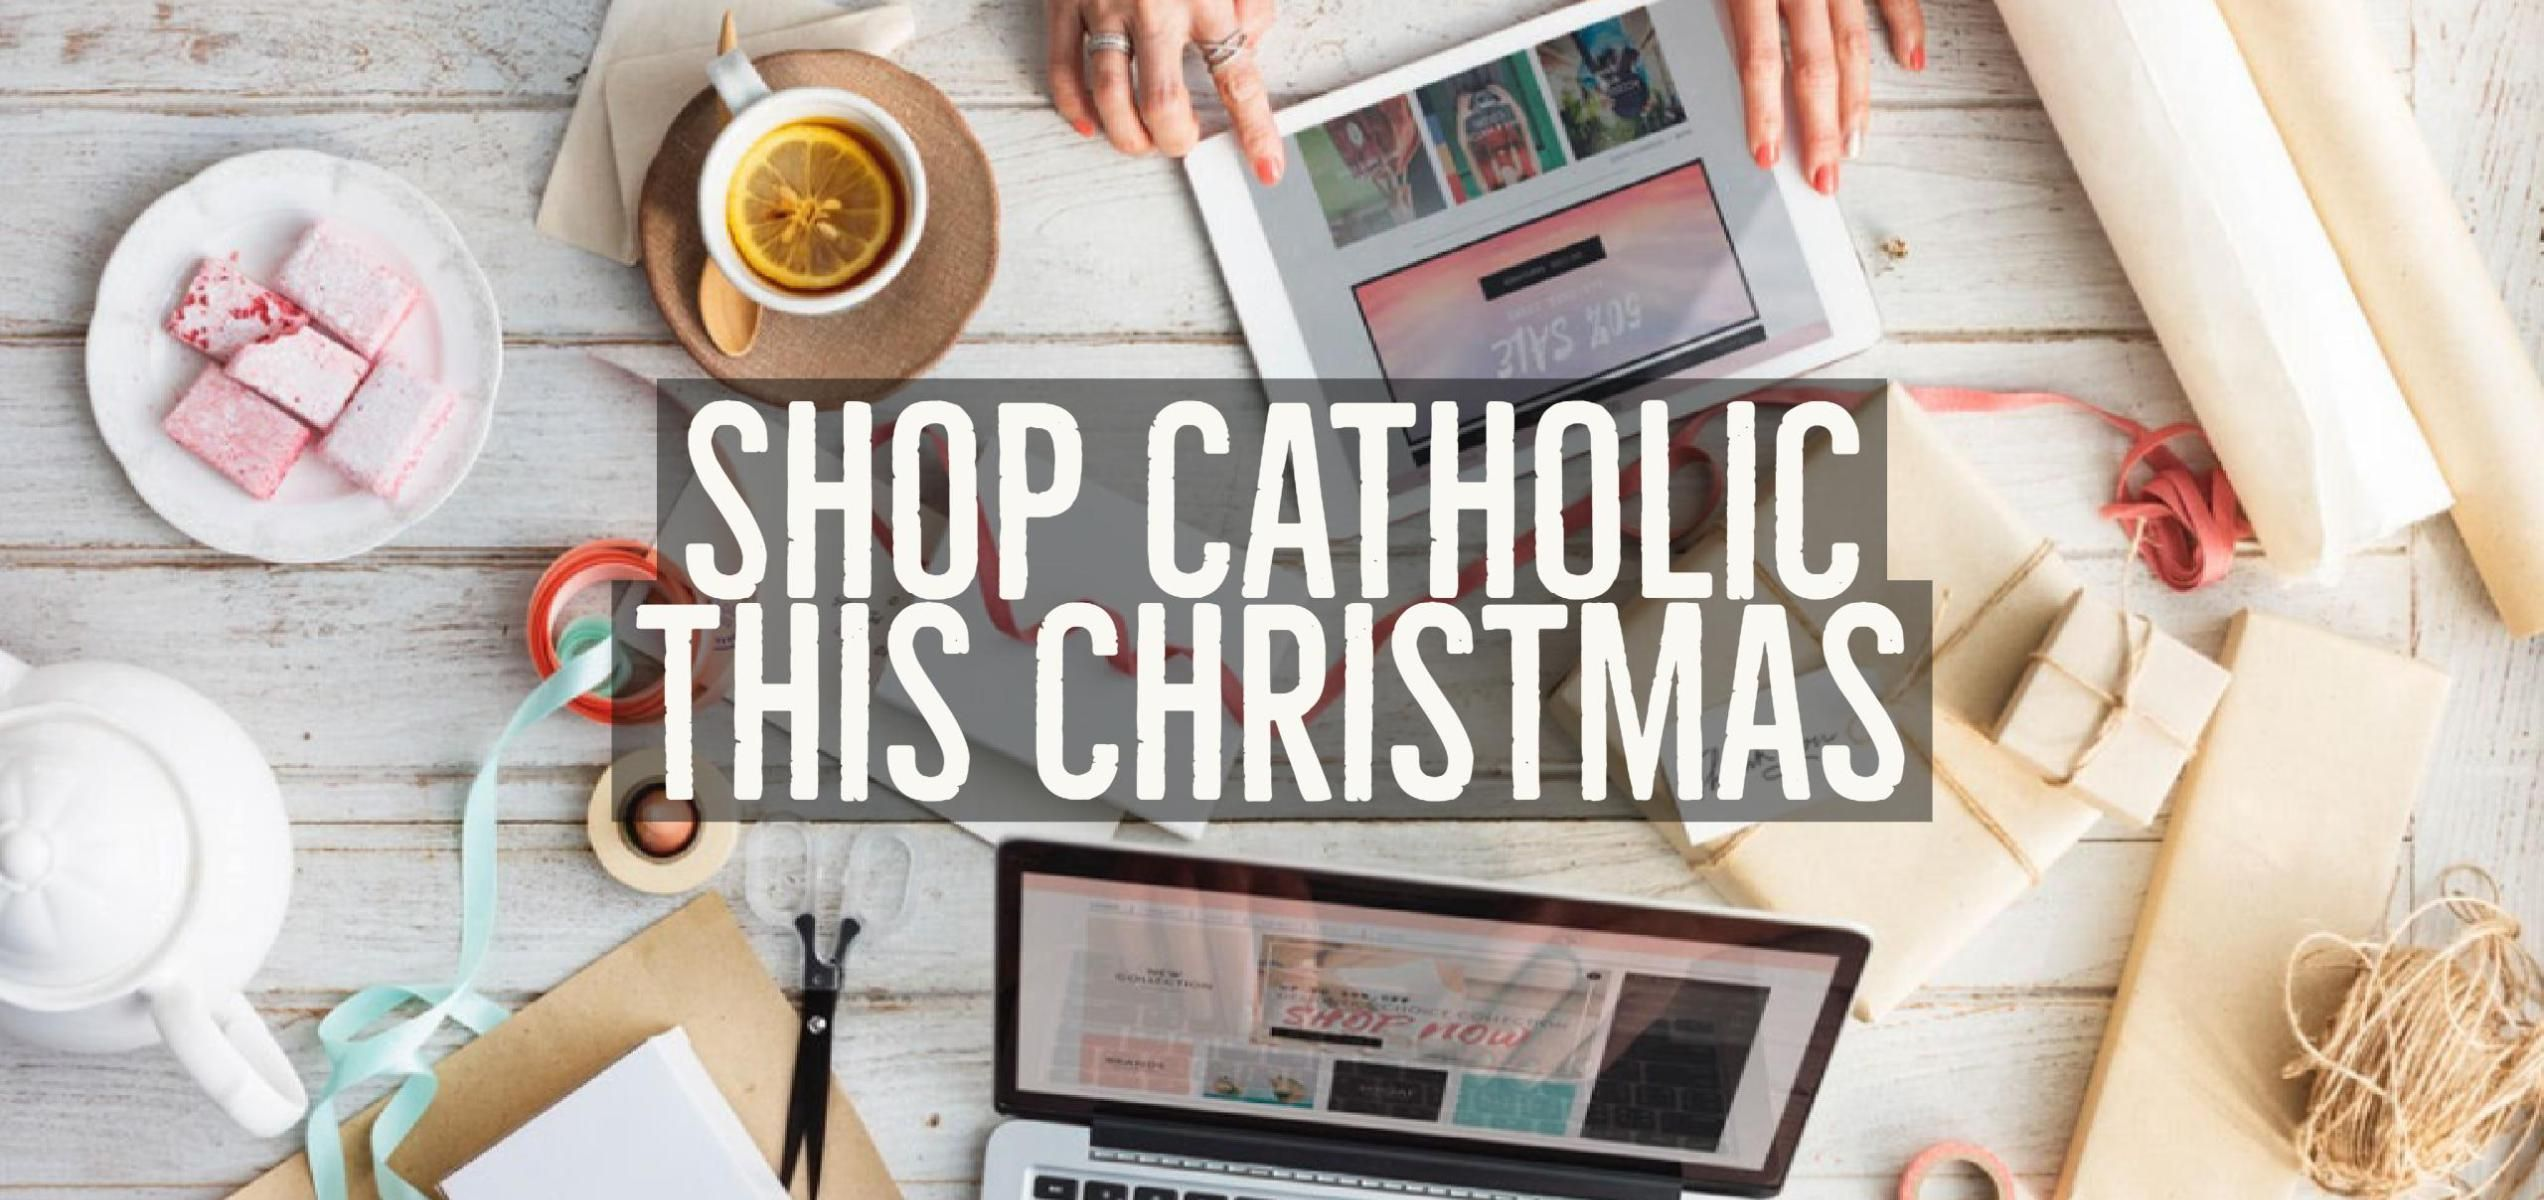 Catholic christmas gift ideas